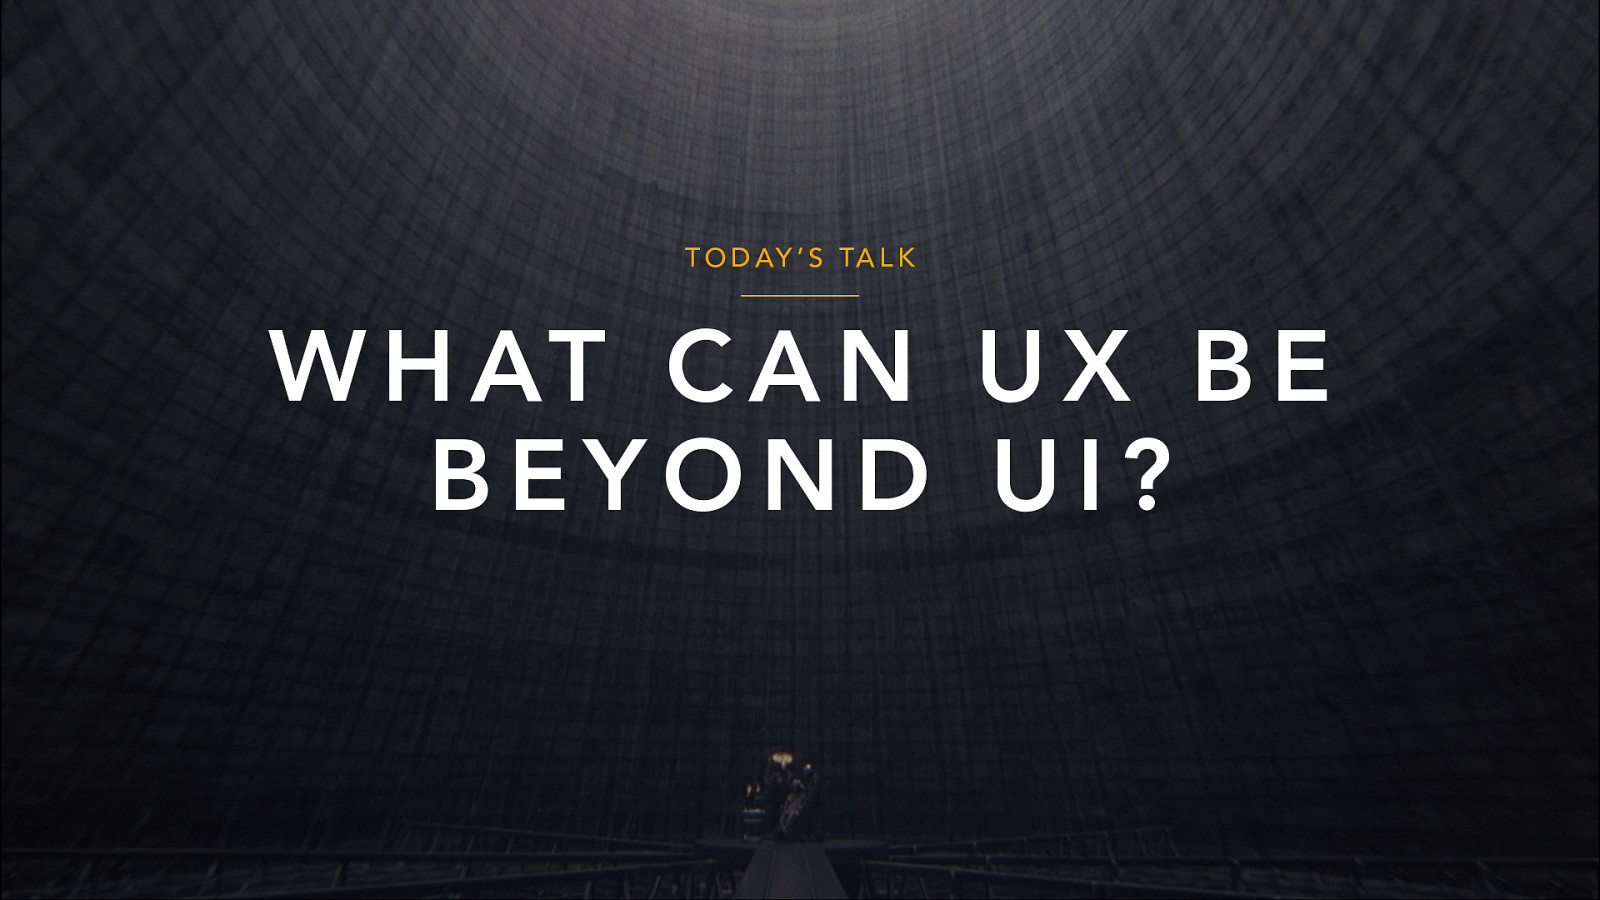 UX is UI: When Worlds Collide